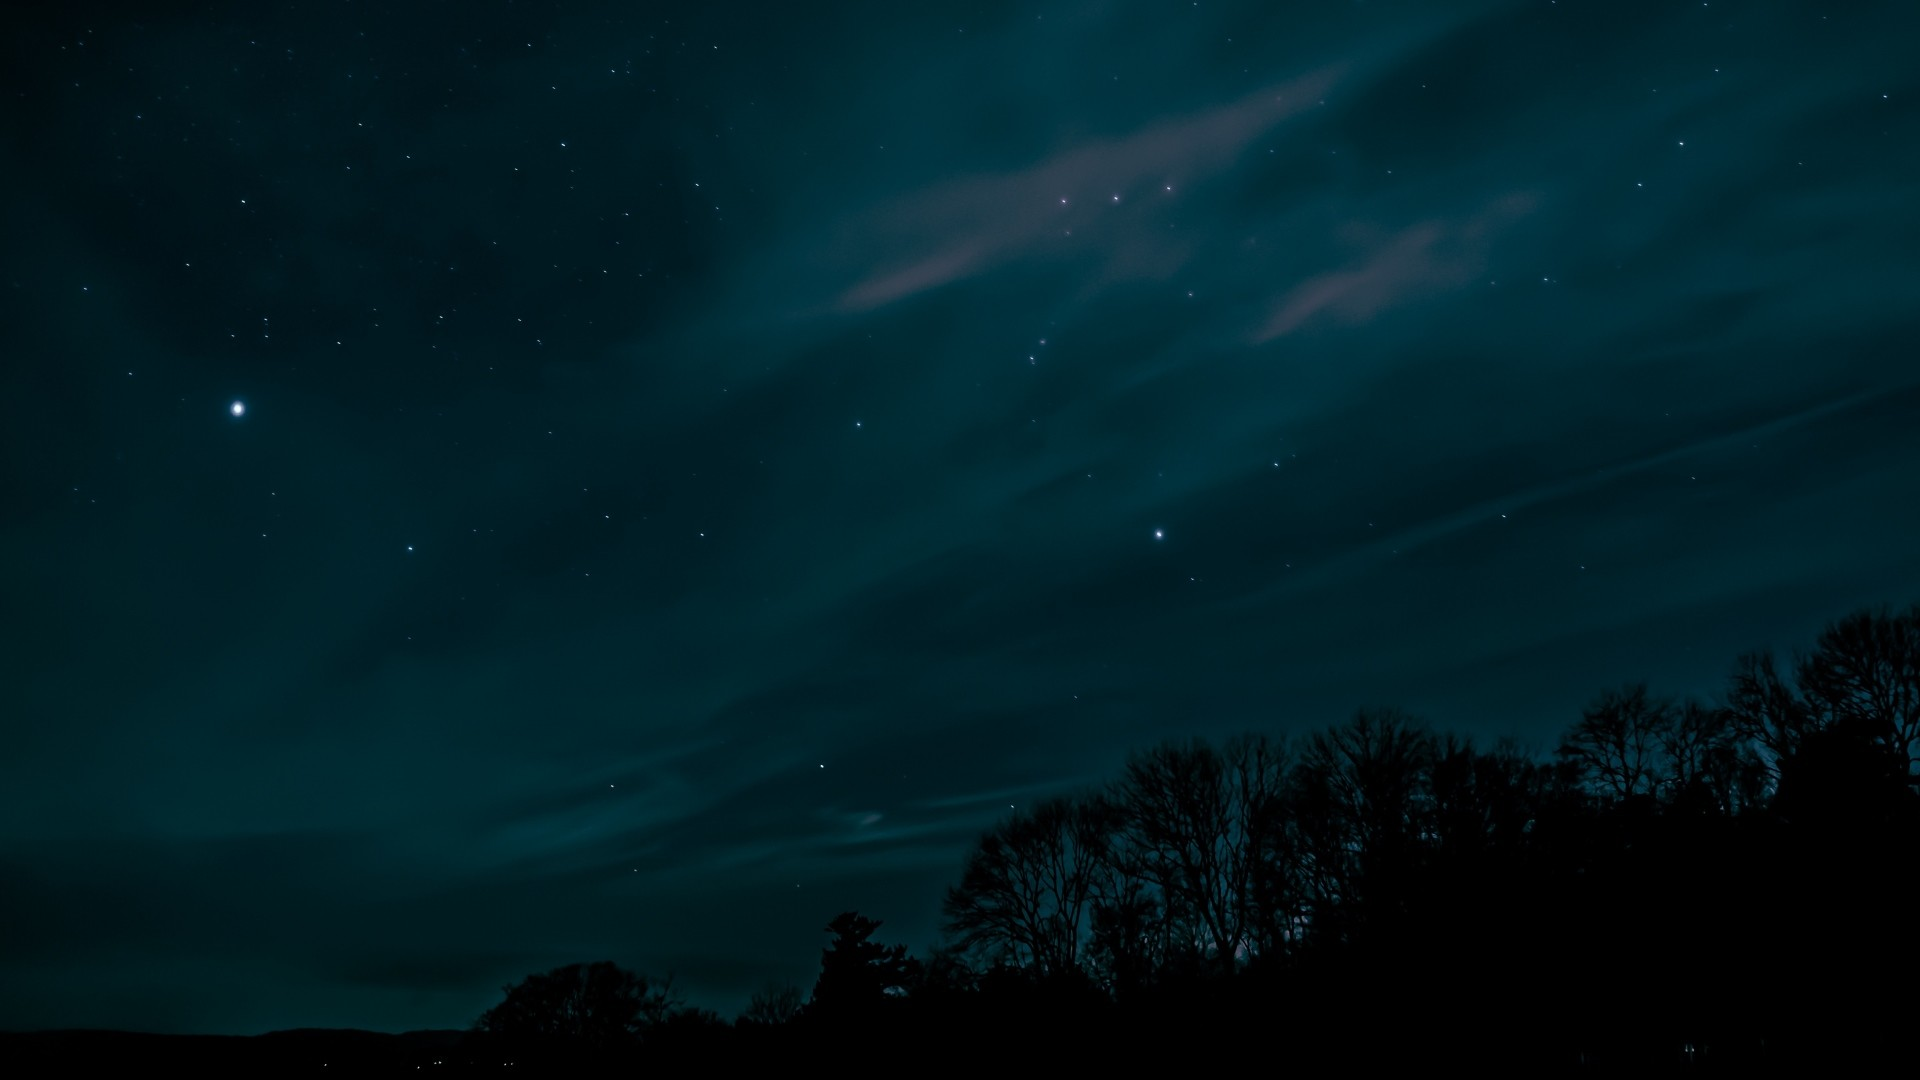 starry night sky wallpaper 70 images